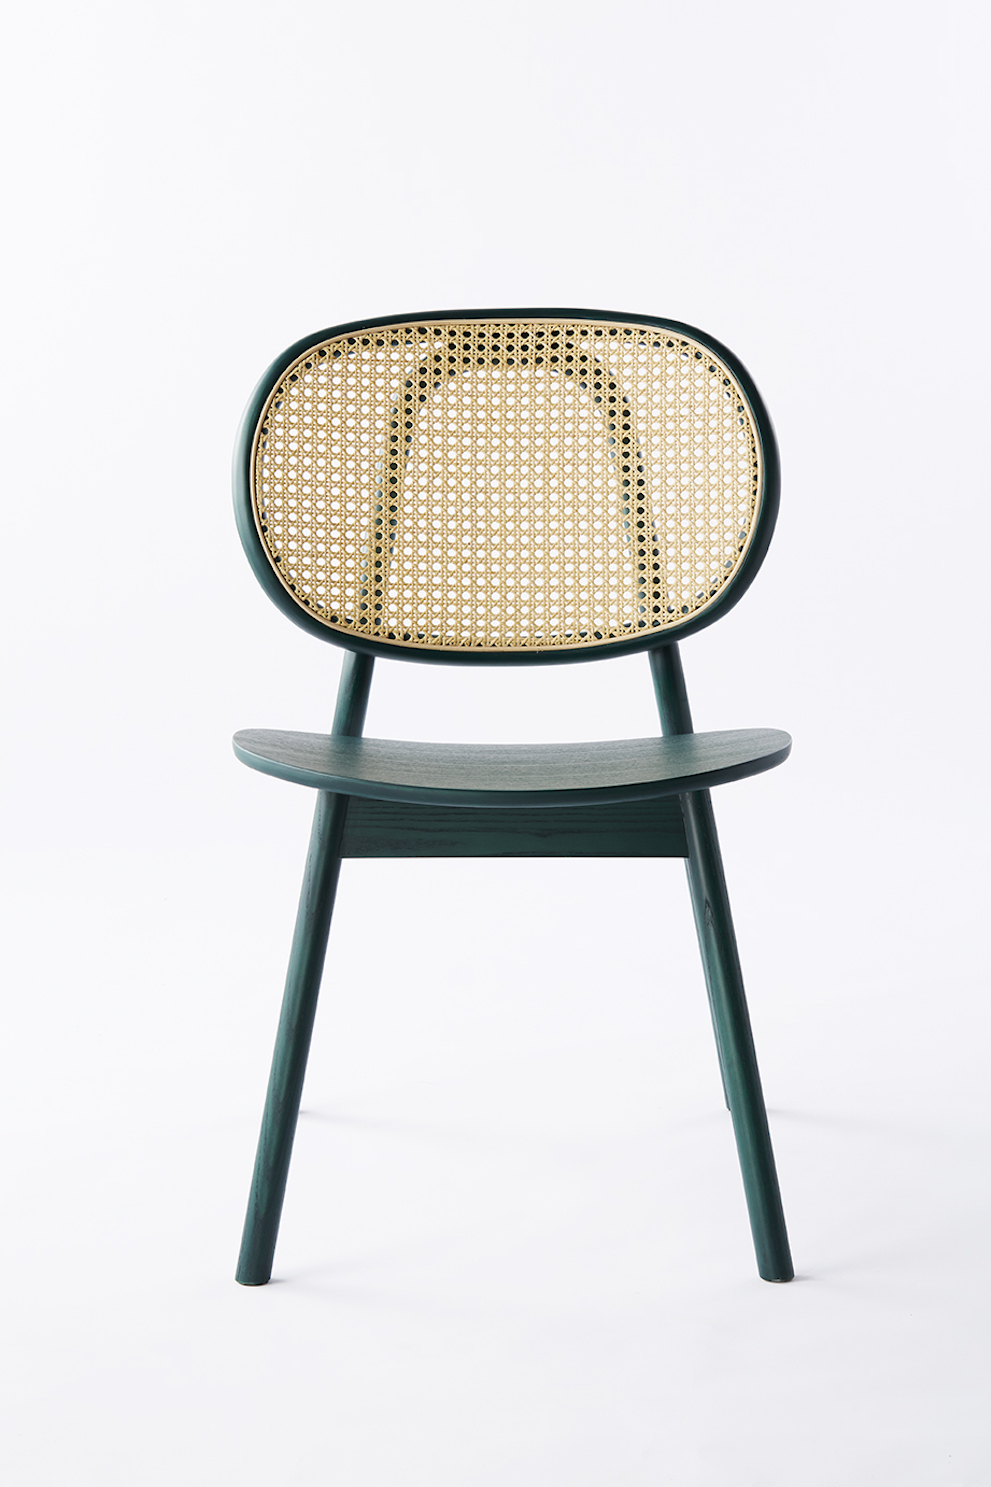 Cane_Side Chair 2018_01_G_612 copy.jpg